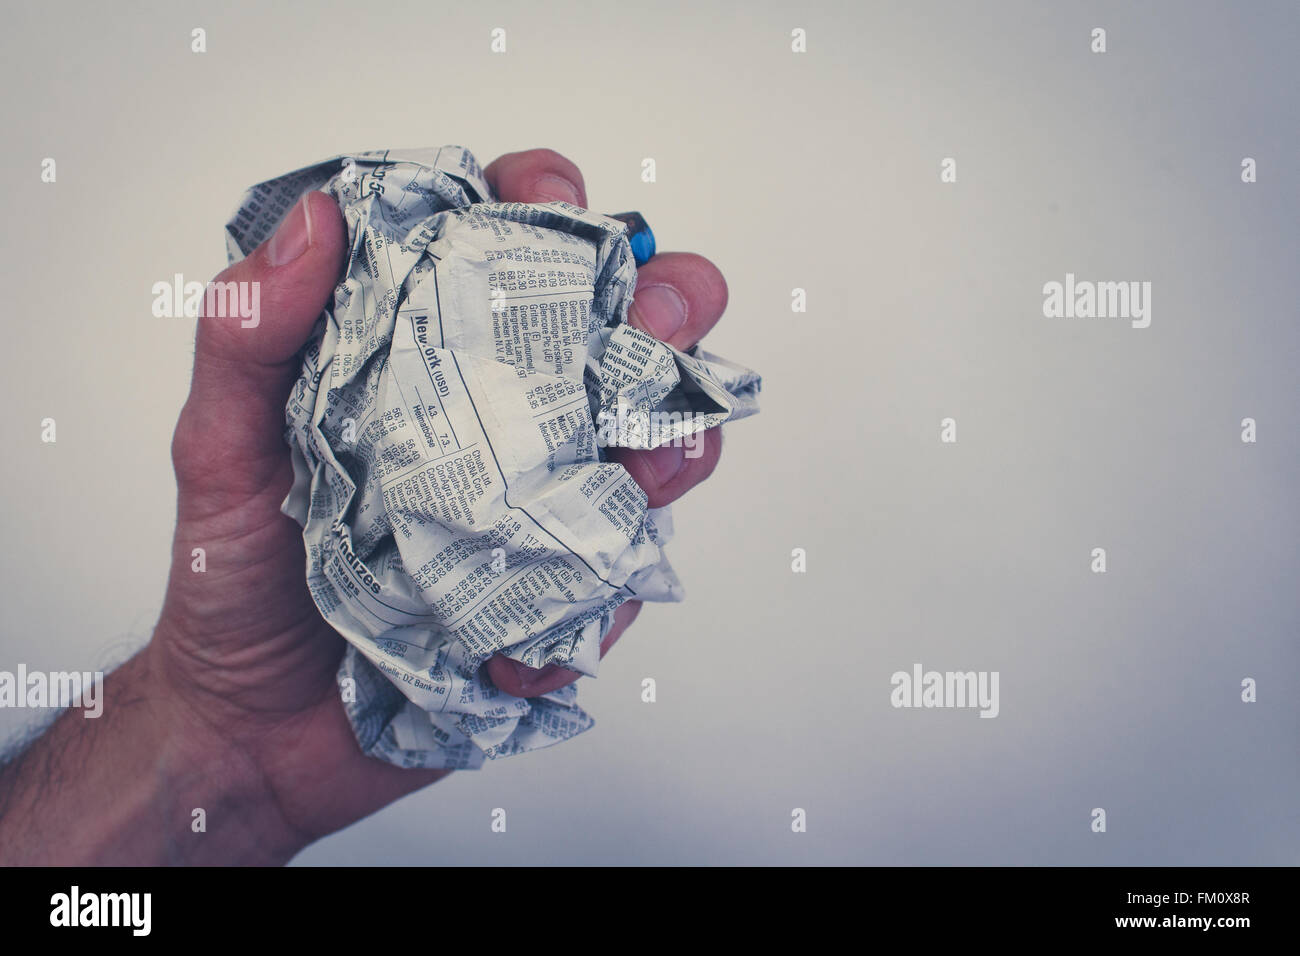 hand / fist holding screwed newspaper, german business section - Stock Image